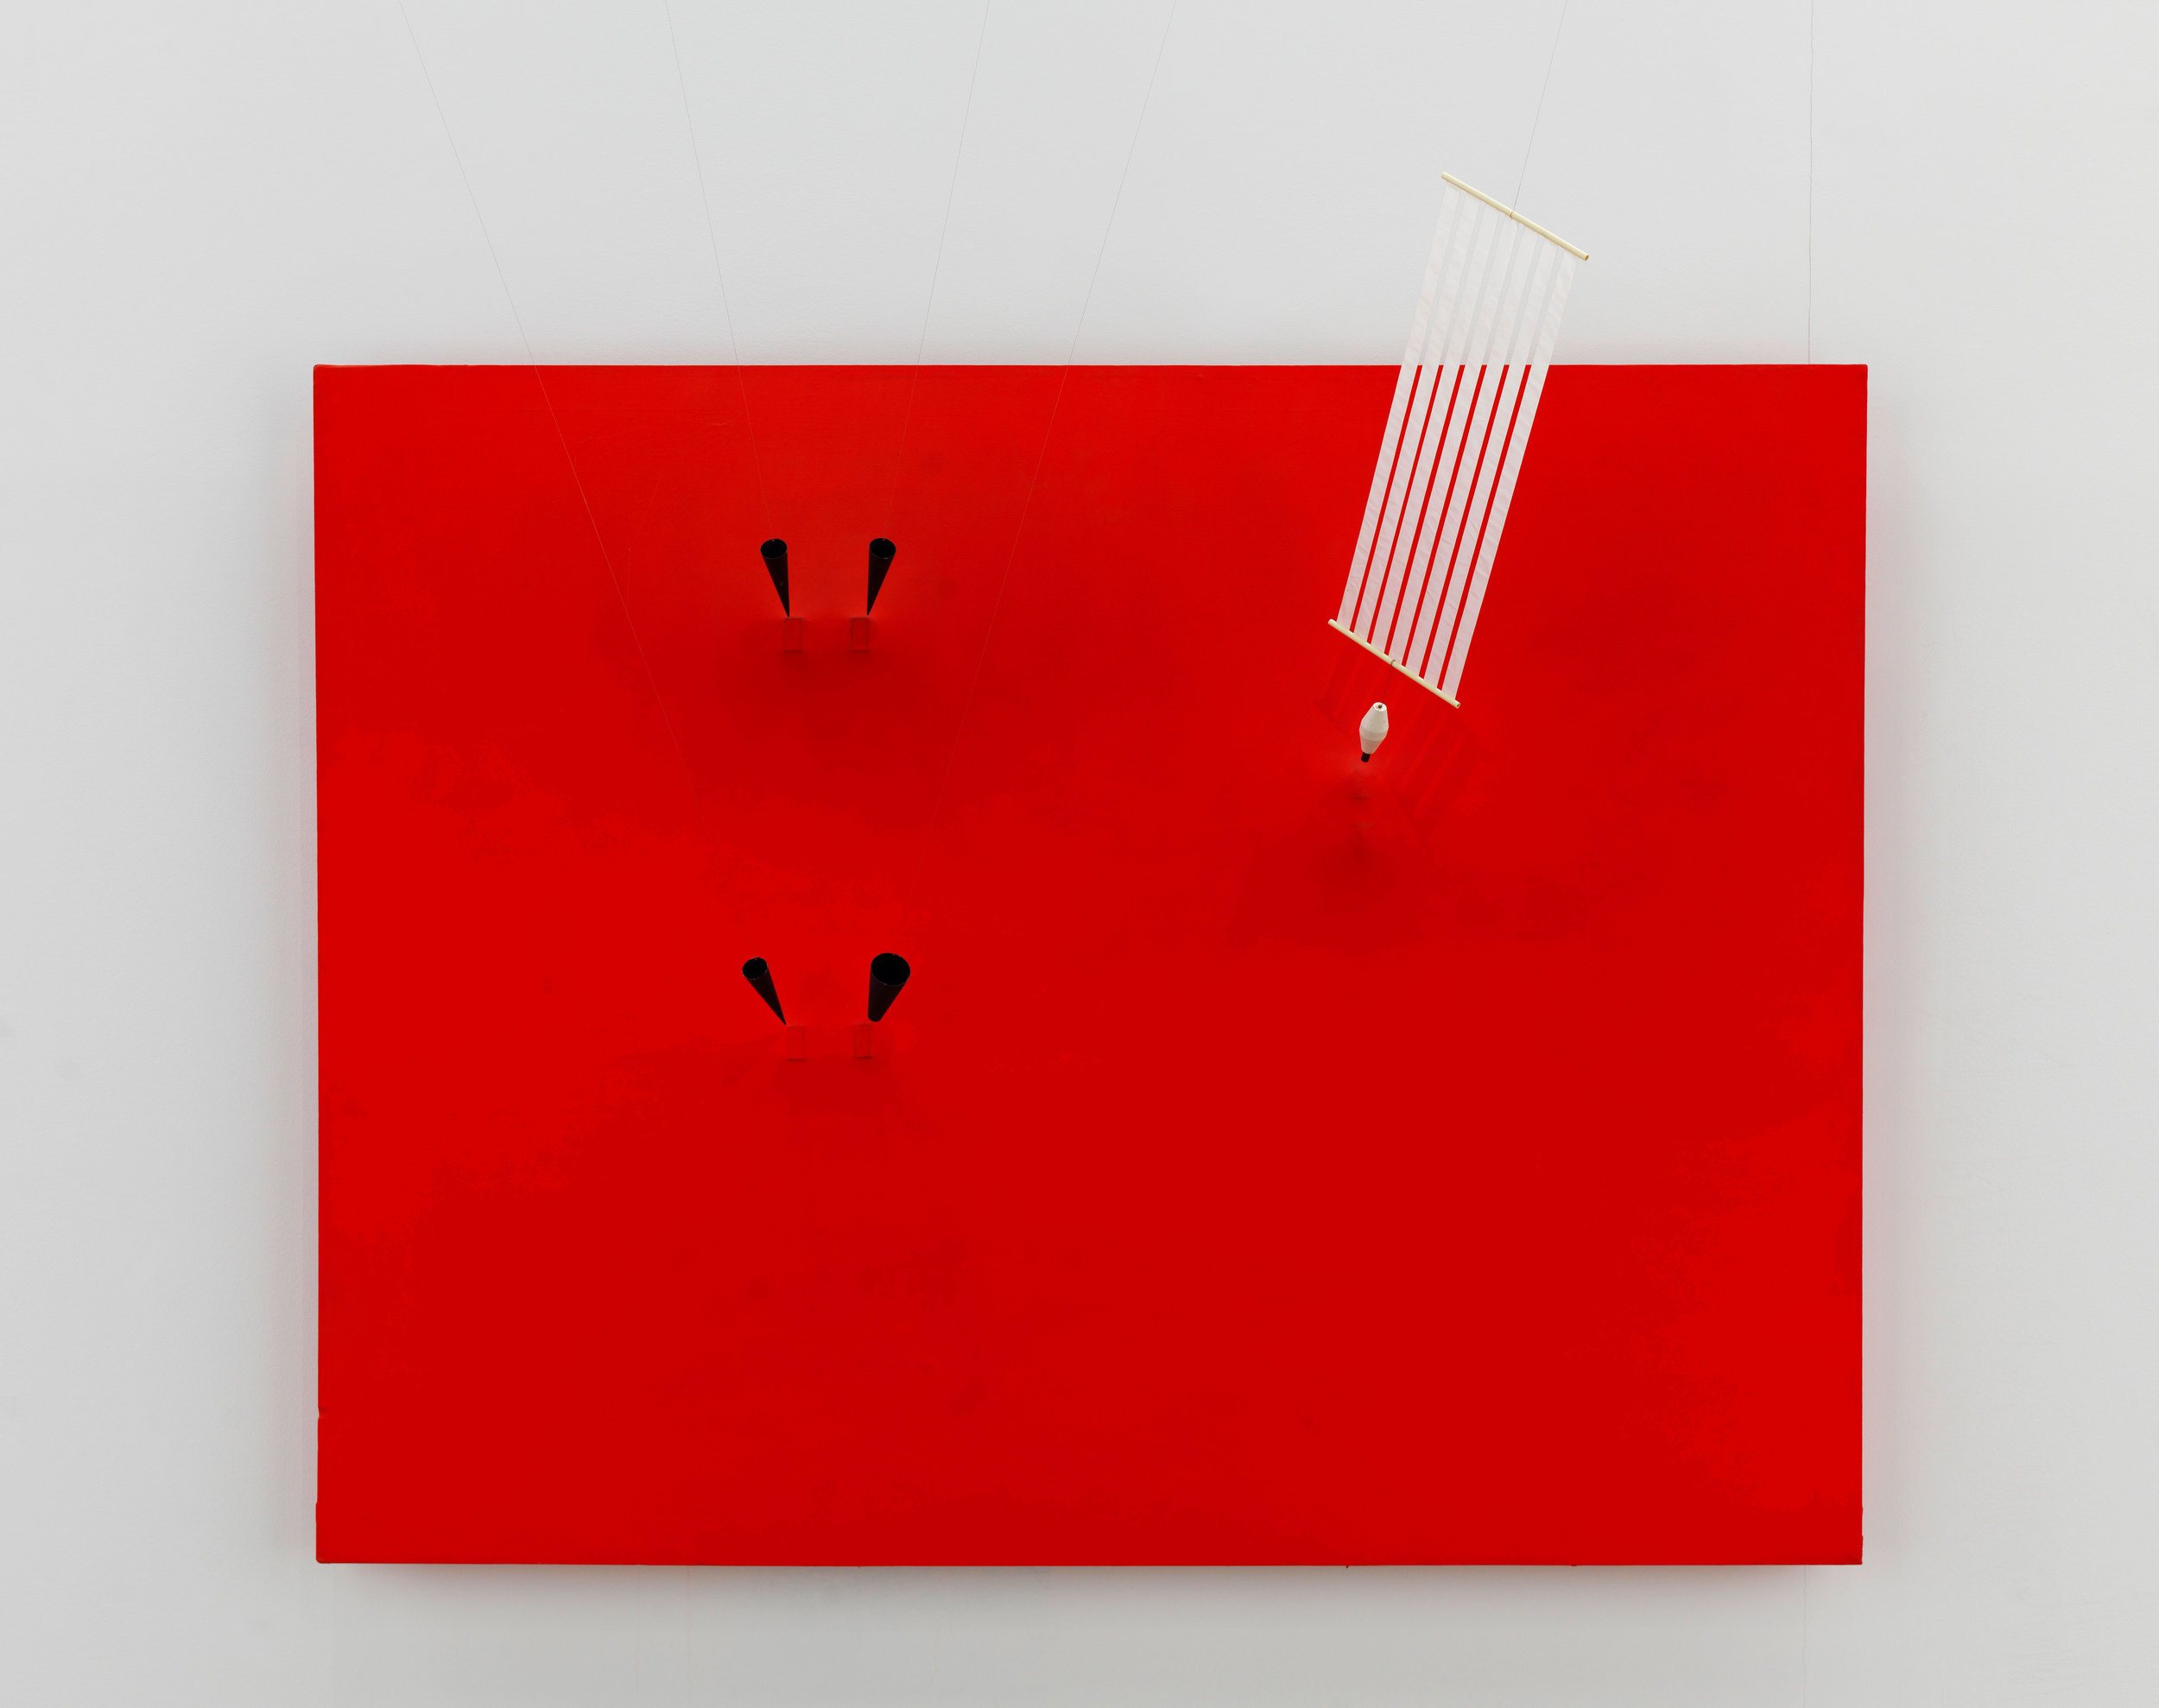 Magnetic Wall 9 (Red)  1961  Acrylic paint on canvas, magnets, copper wire, foam, paint, plastic,steel, synthetic cloth 180 × 220 × 10 cm Centre Pompidou, Musée national d'art moderne–Centre de création industrielle, Paris © ADAGP, Paris and DACS, London 2019 Photo: Georges Meguerditchian